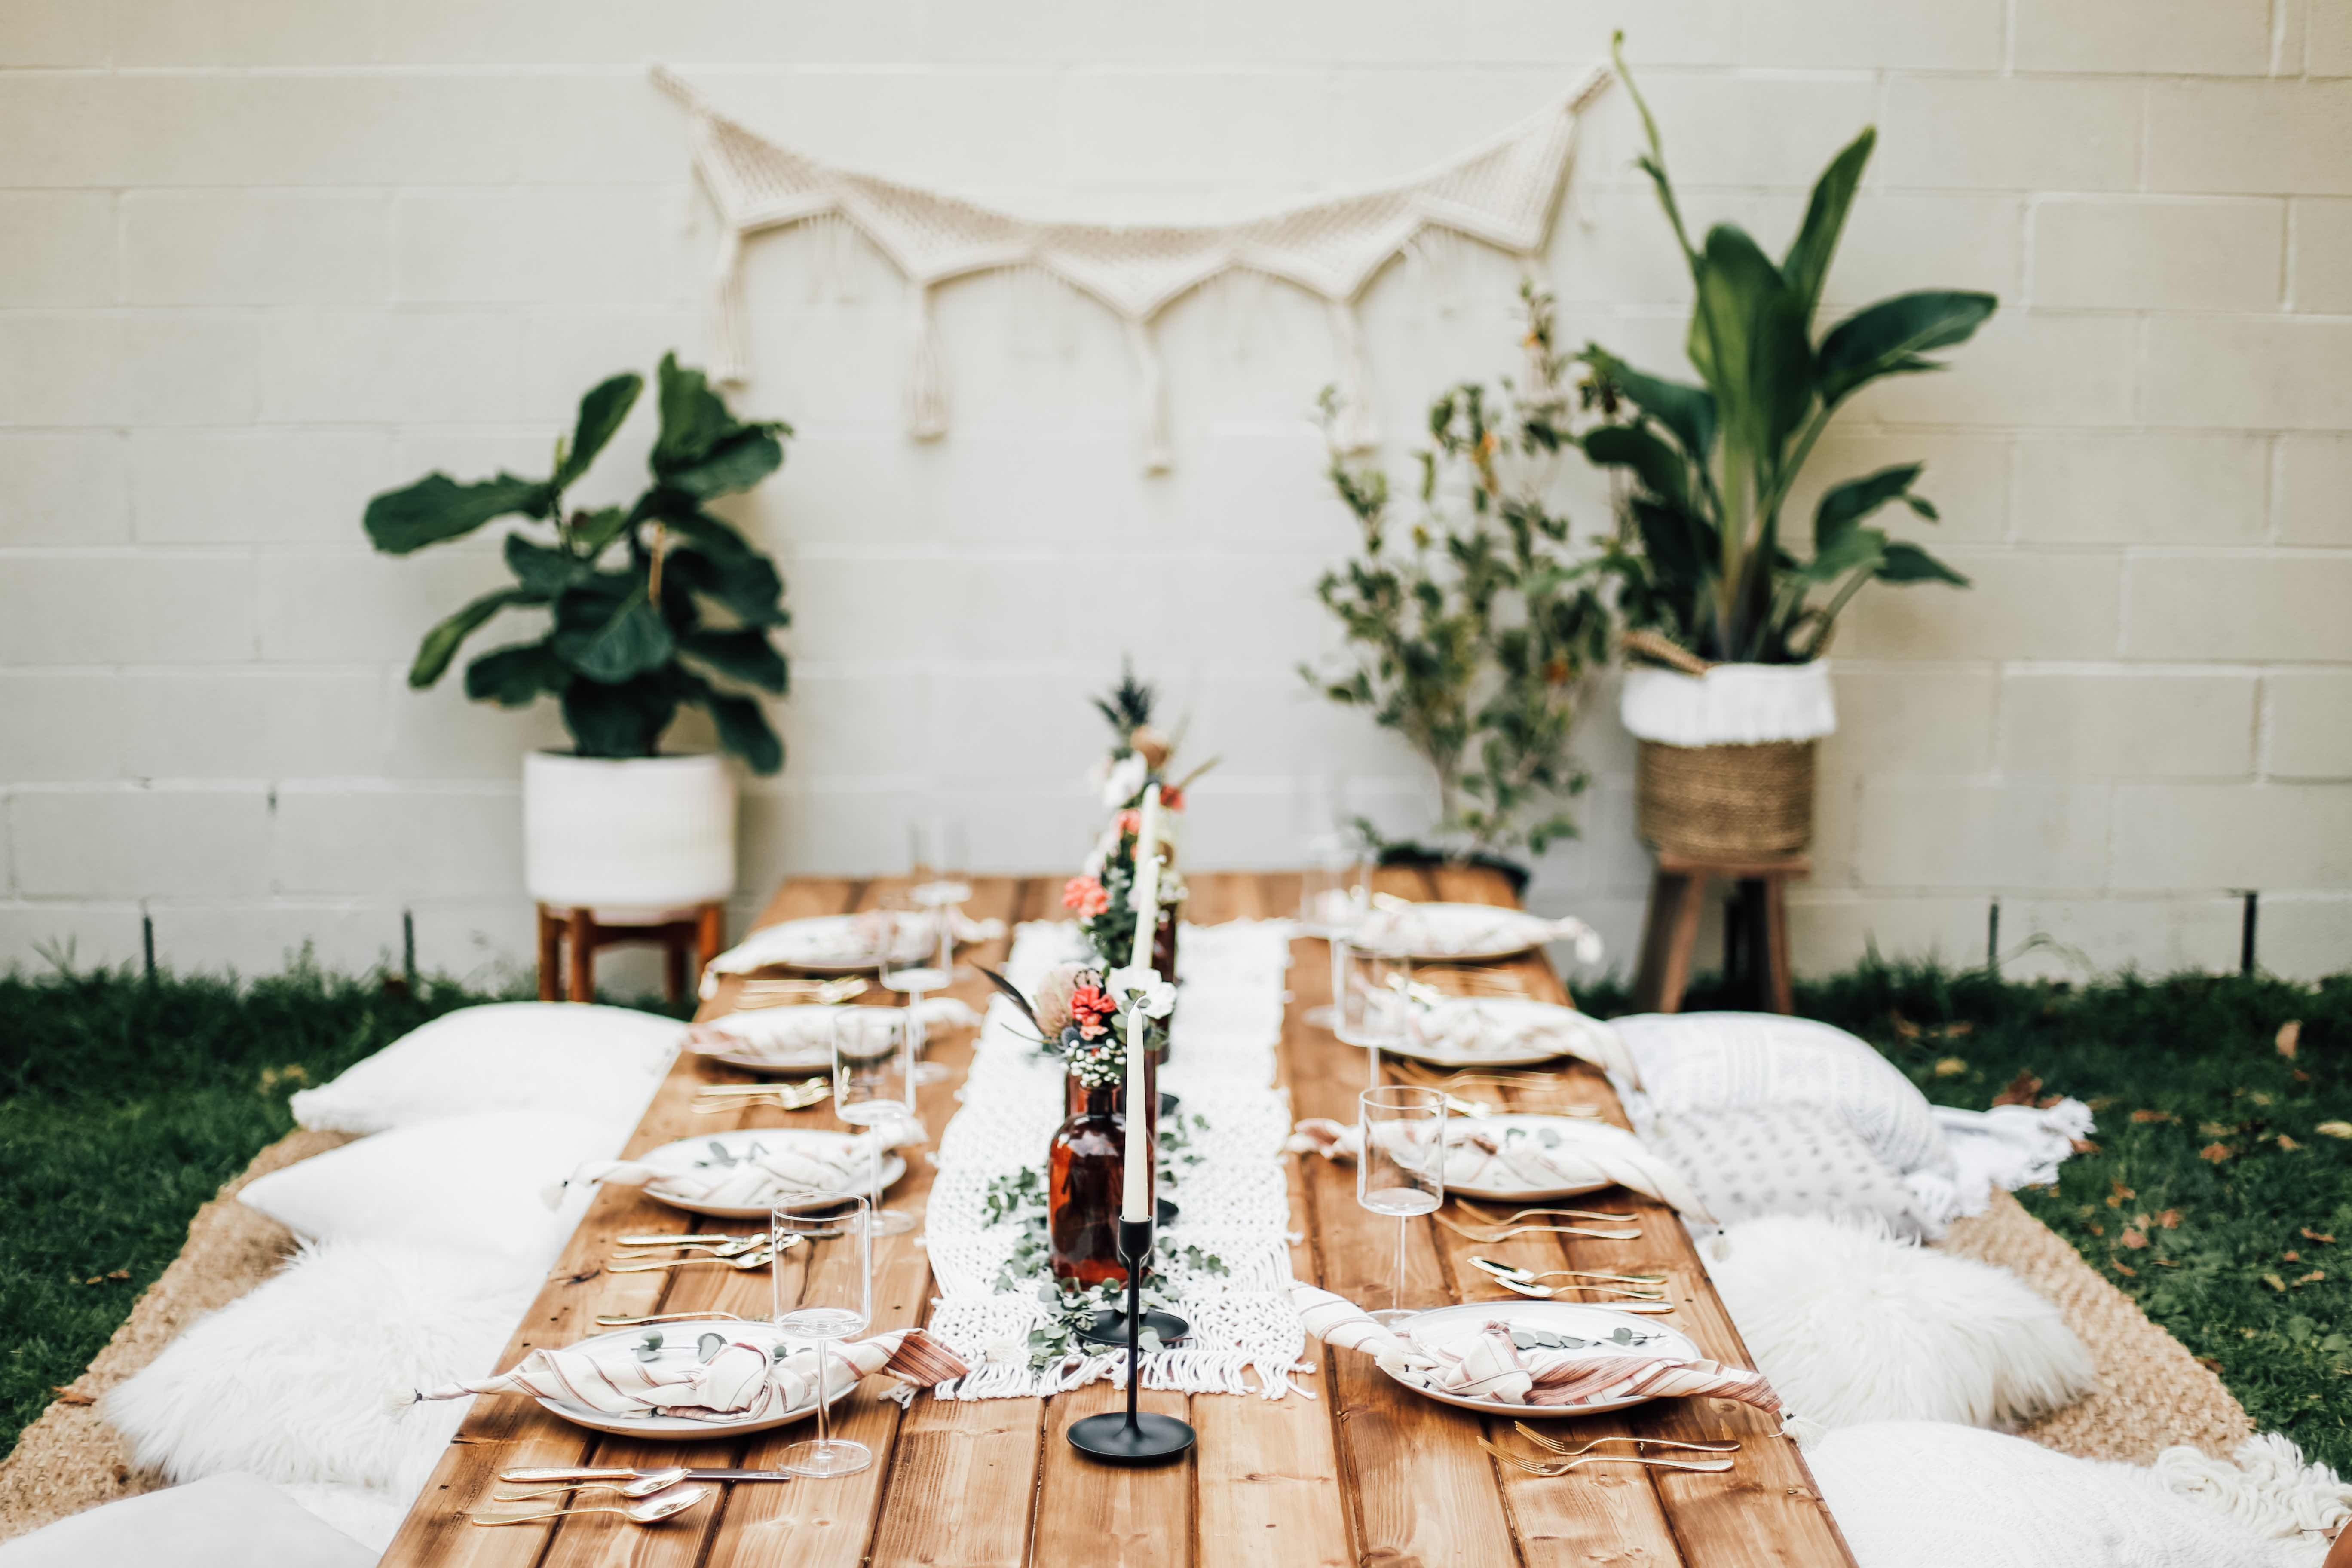 How to Throw the Best Backyard Boho Dinner Party